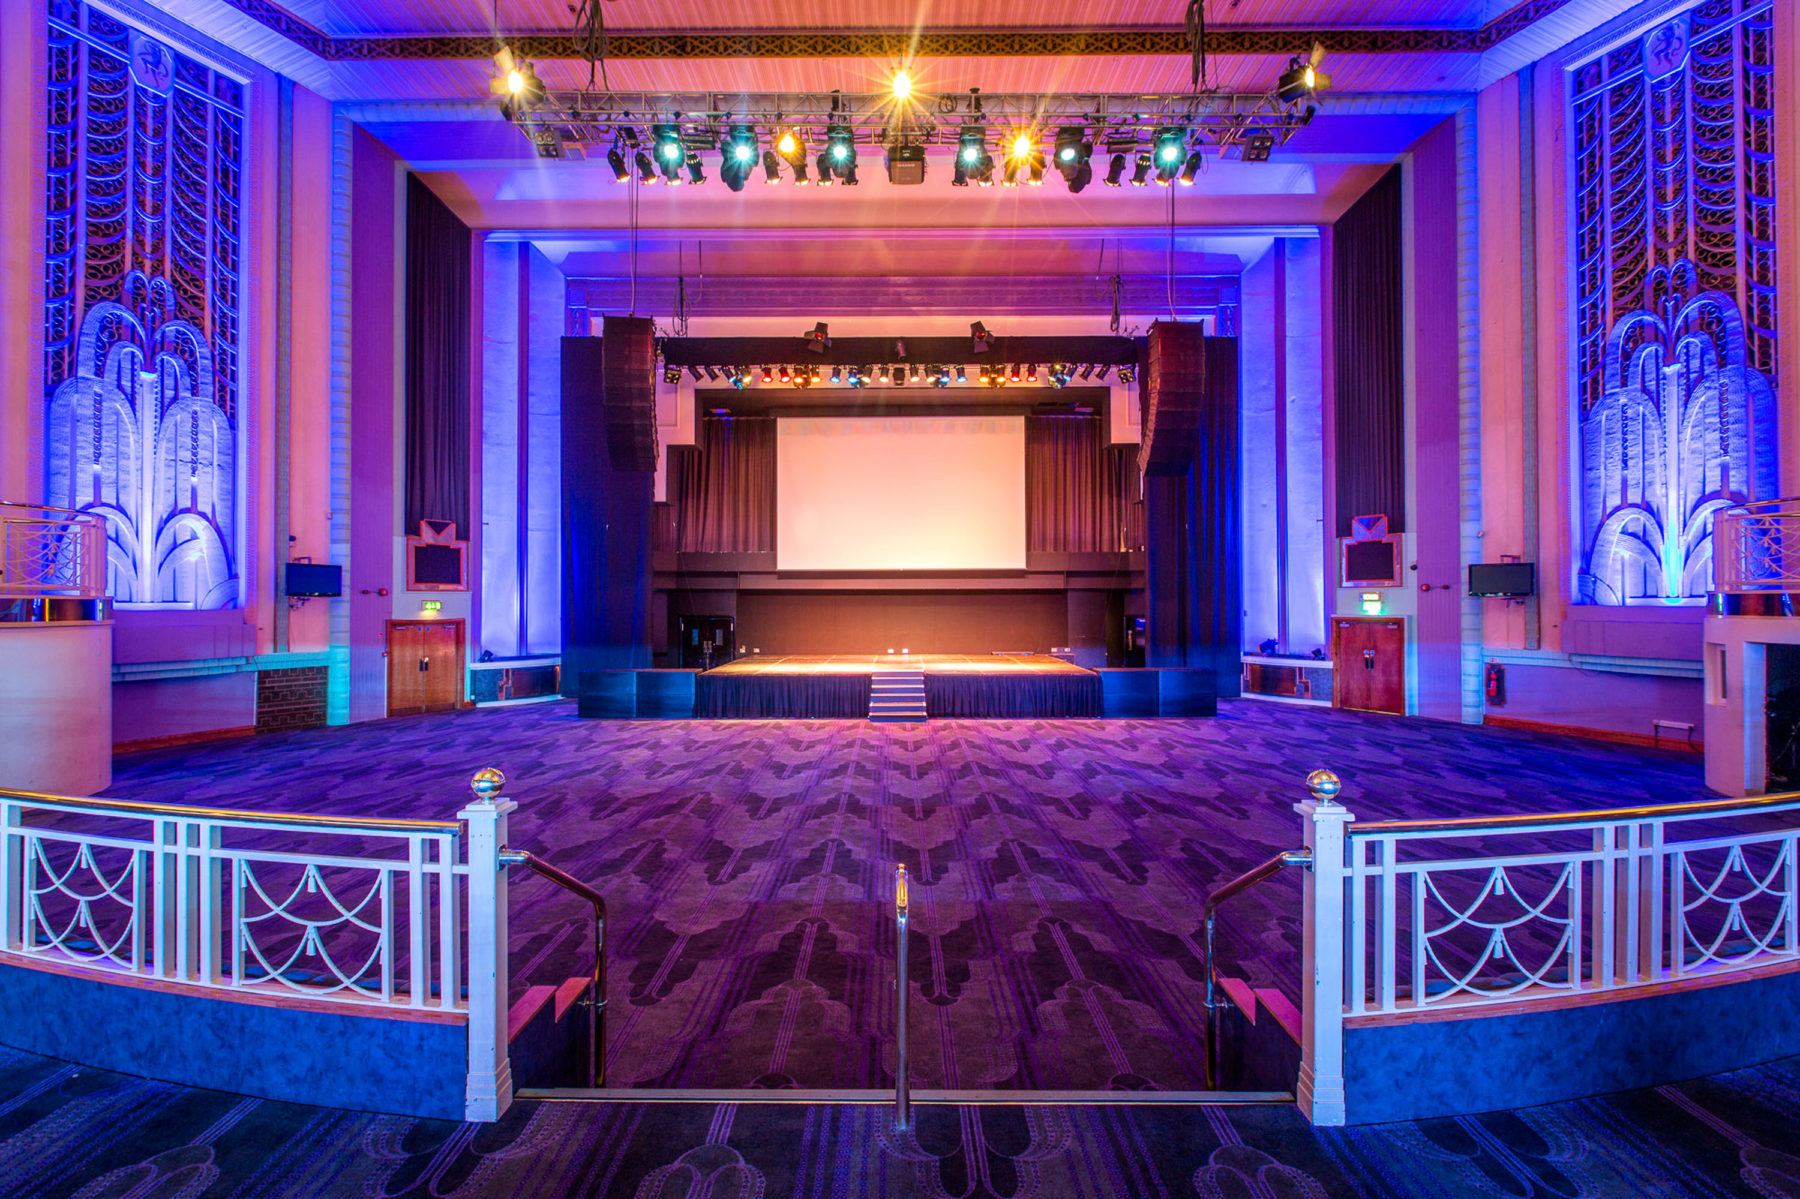 Troxy Banqueting Hall 03 Concert Conservation Art Deco